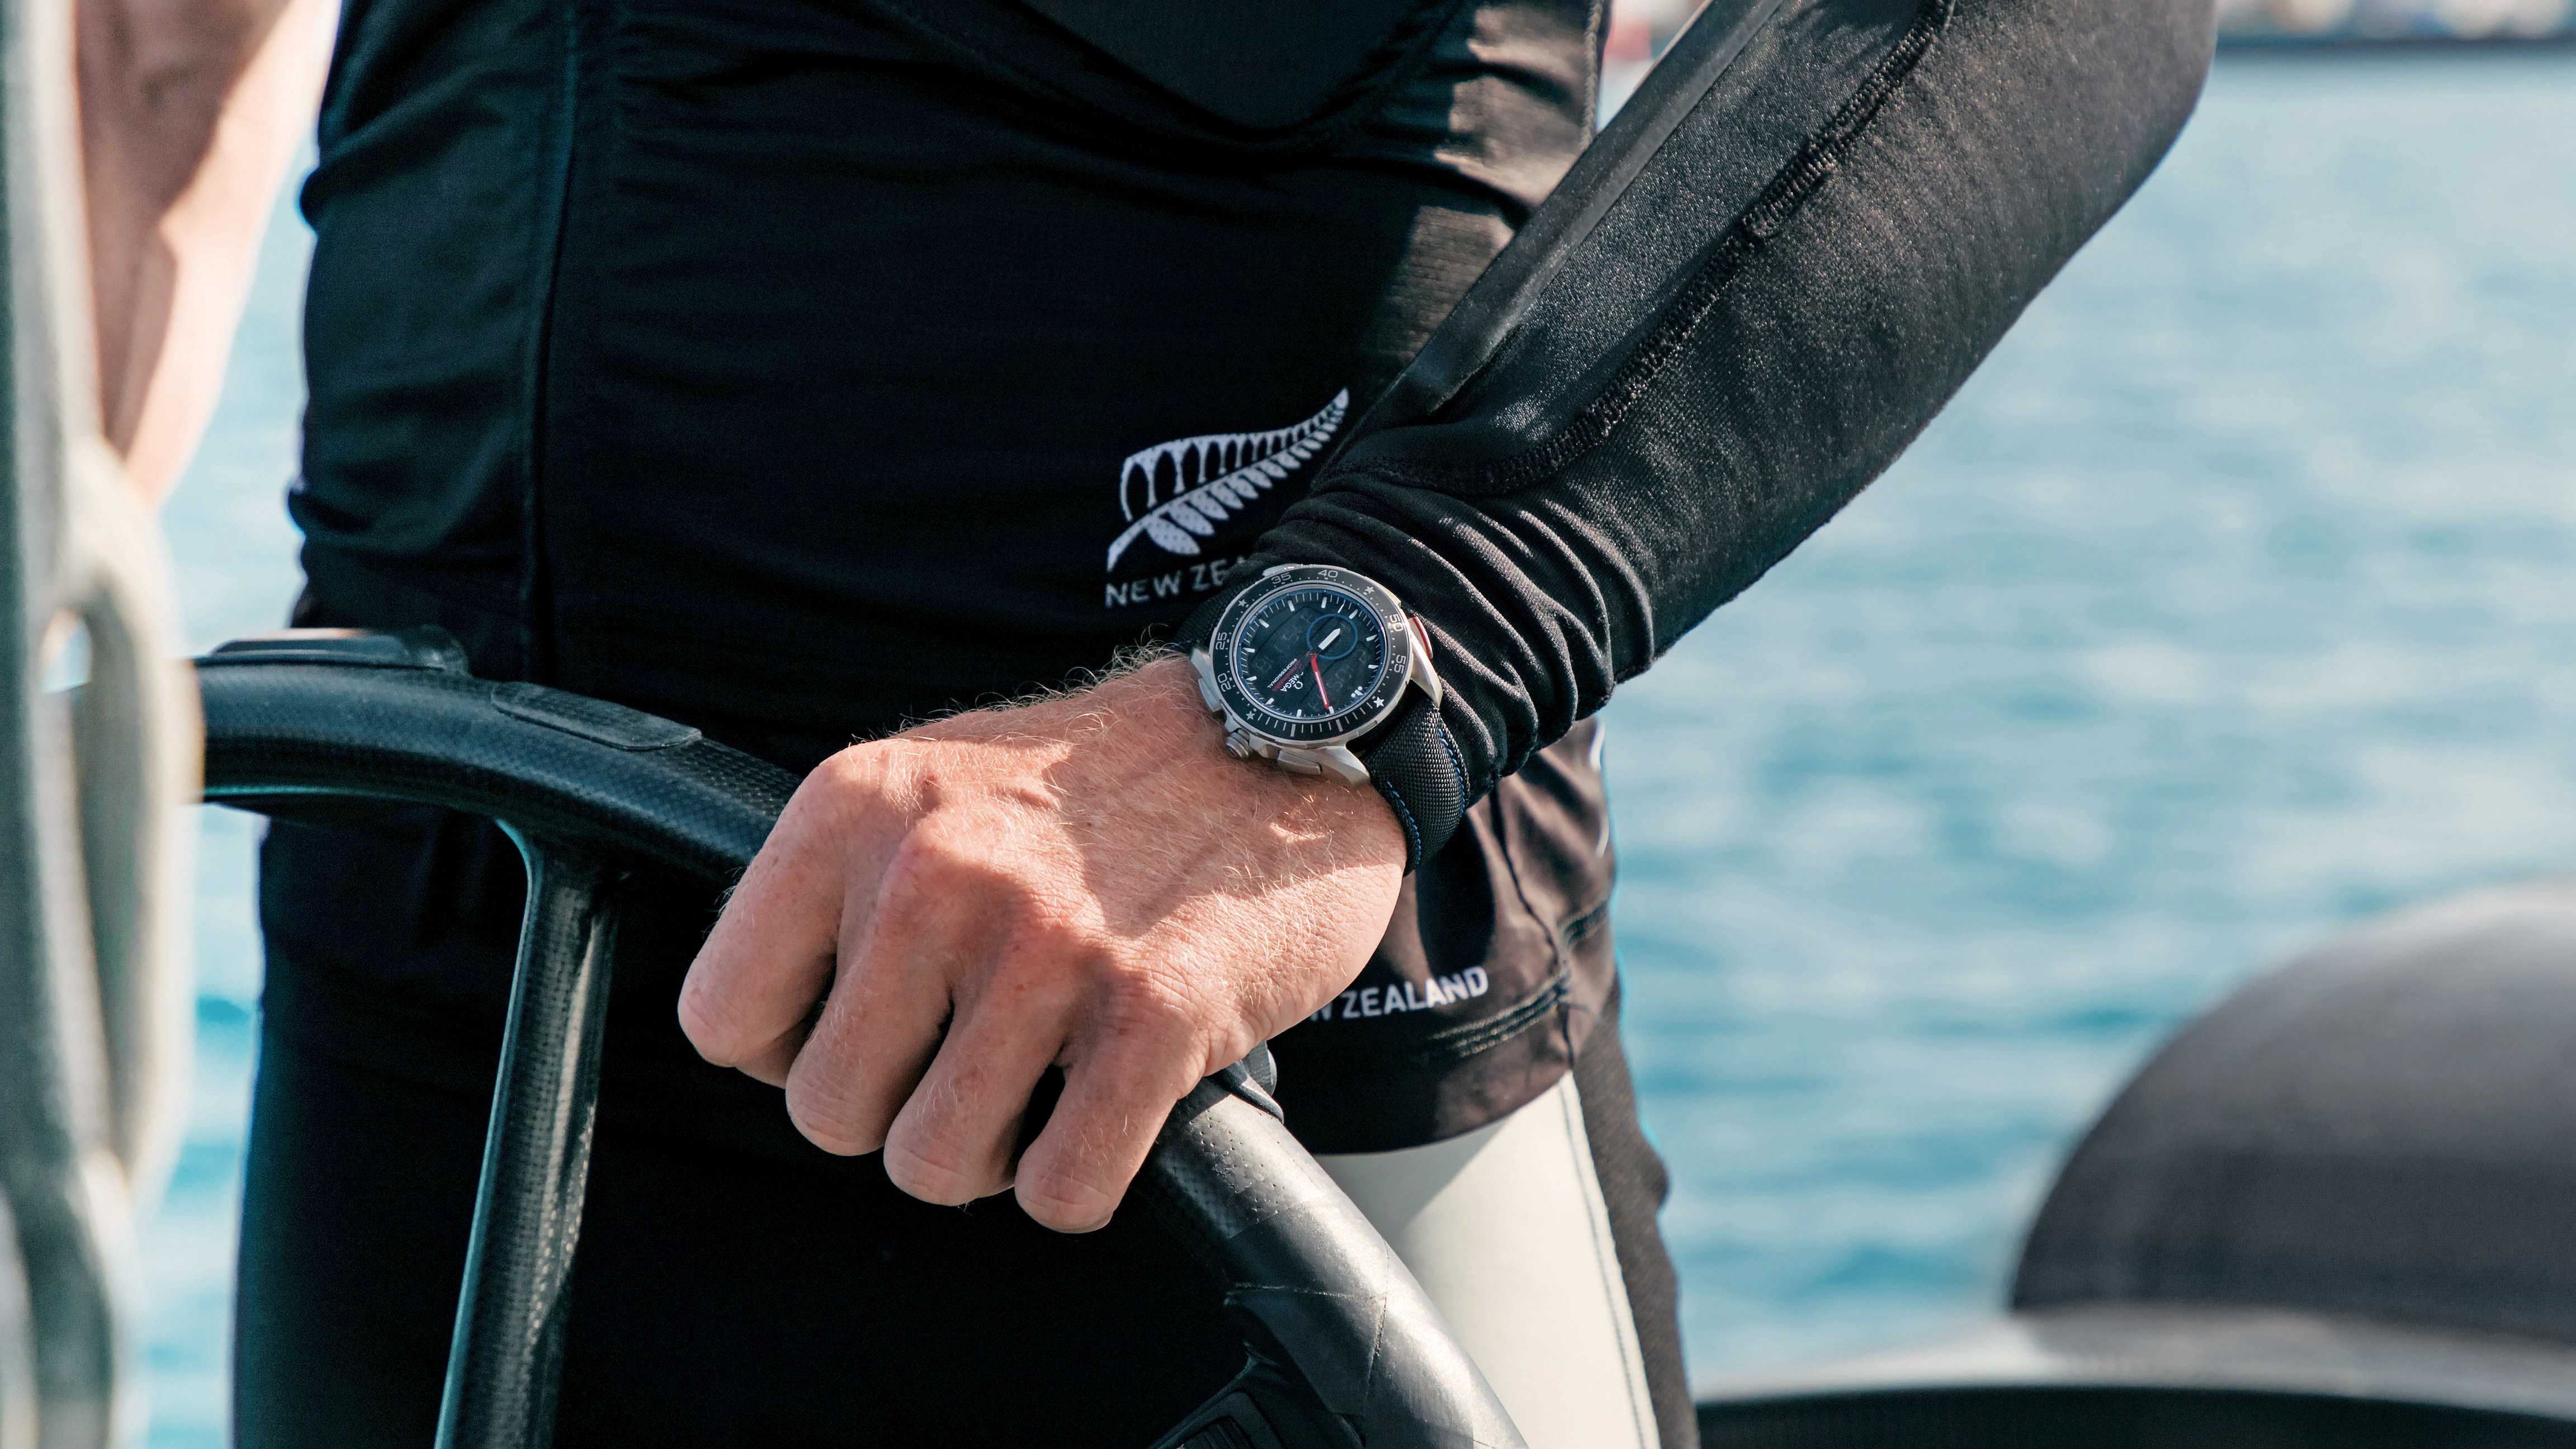 Hero.jpg?ixlib=rails 1.1 introducing: omega launches x-33 regatta, seamaster planet ocean deep black etnz at the 35th america's cup Introducing: Omega Launches X-33 Regatta, Seamaster Planet Ocean Deep Black ETNZ At The 35th America's Cup hero